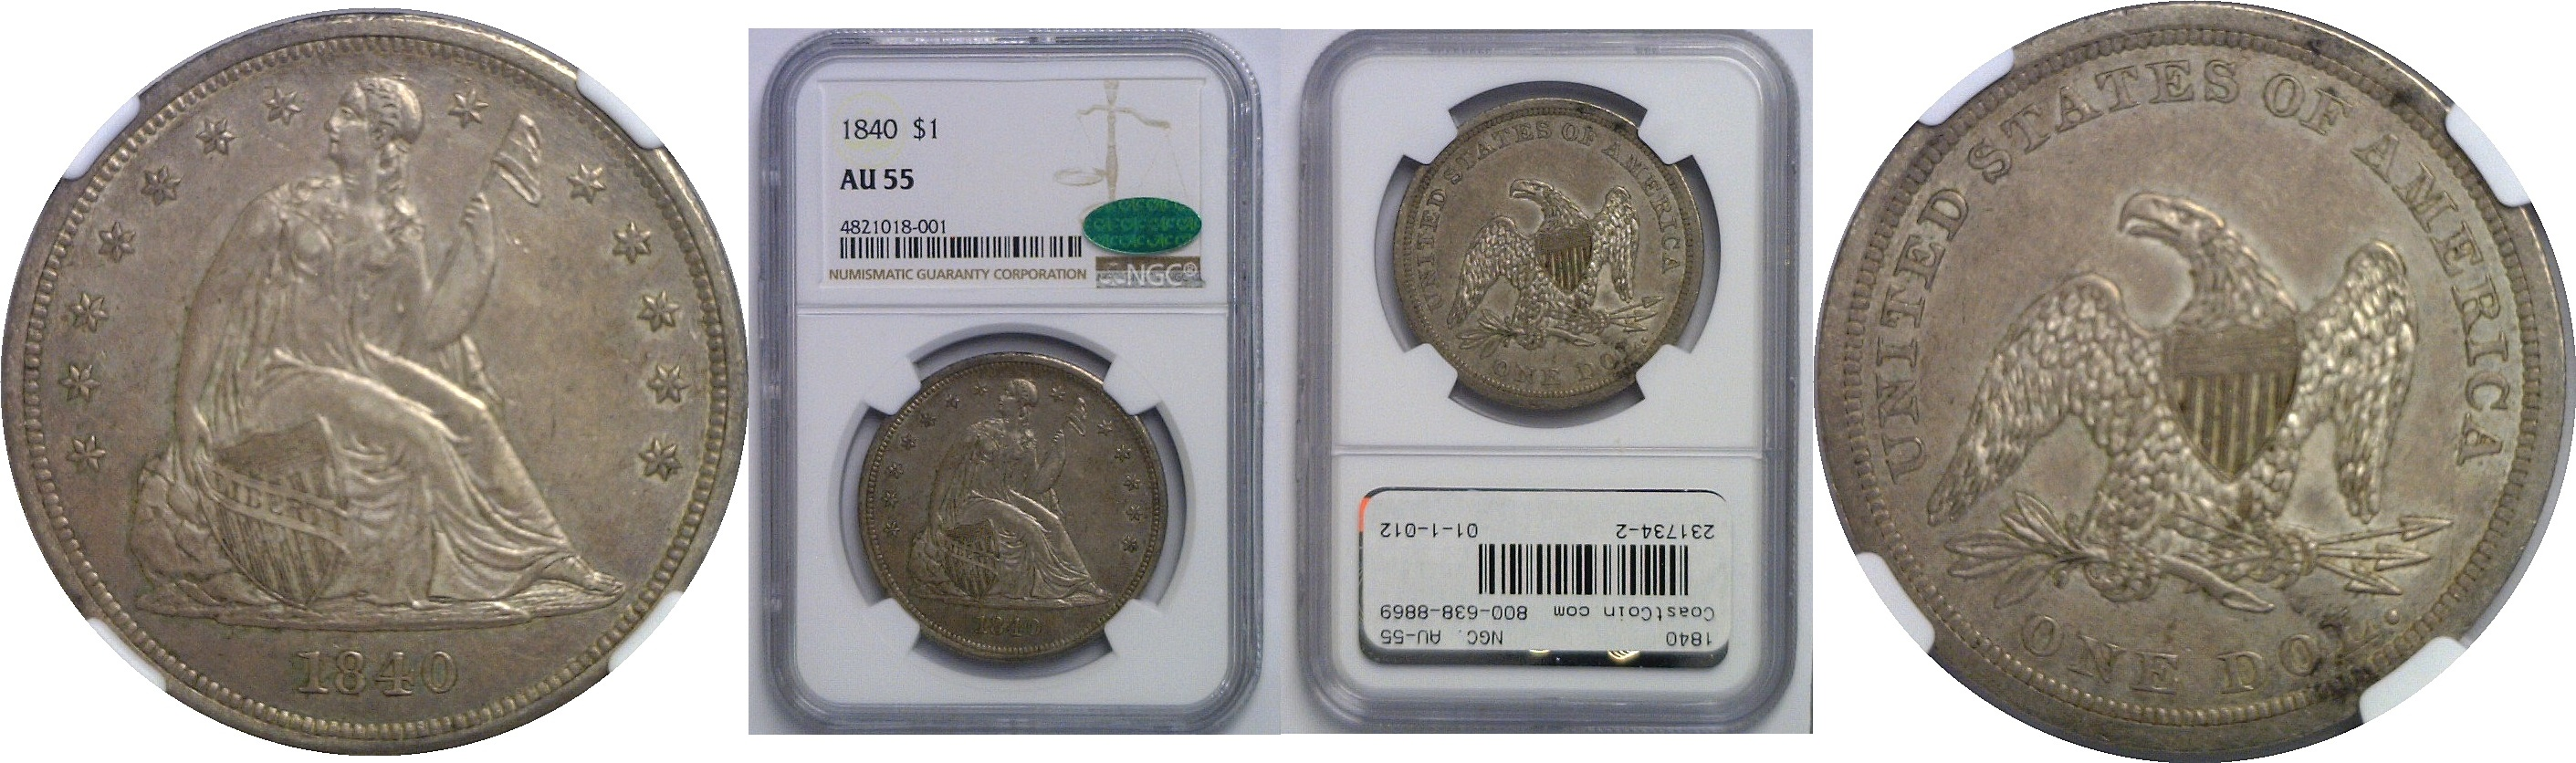 Liberty Seated Dollar (1836-1873) - Coins for sale on Collectors Corner